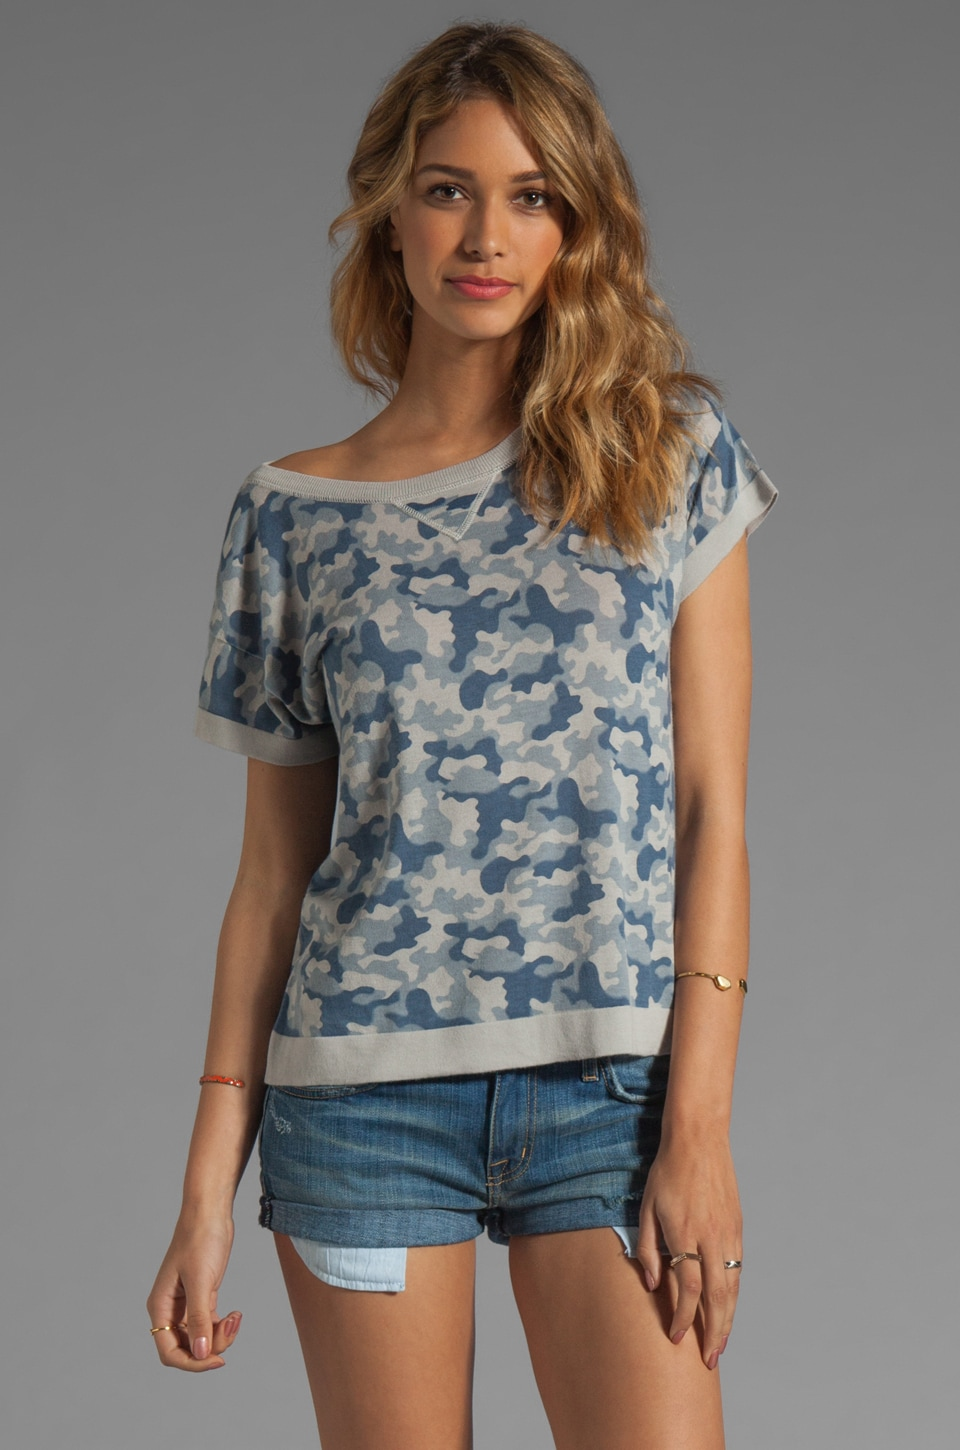 Gryphon Camo Tee in Denim